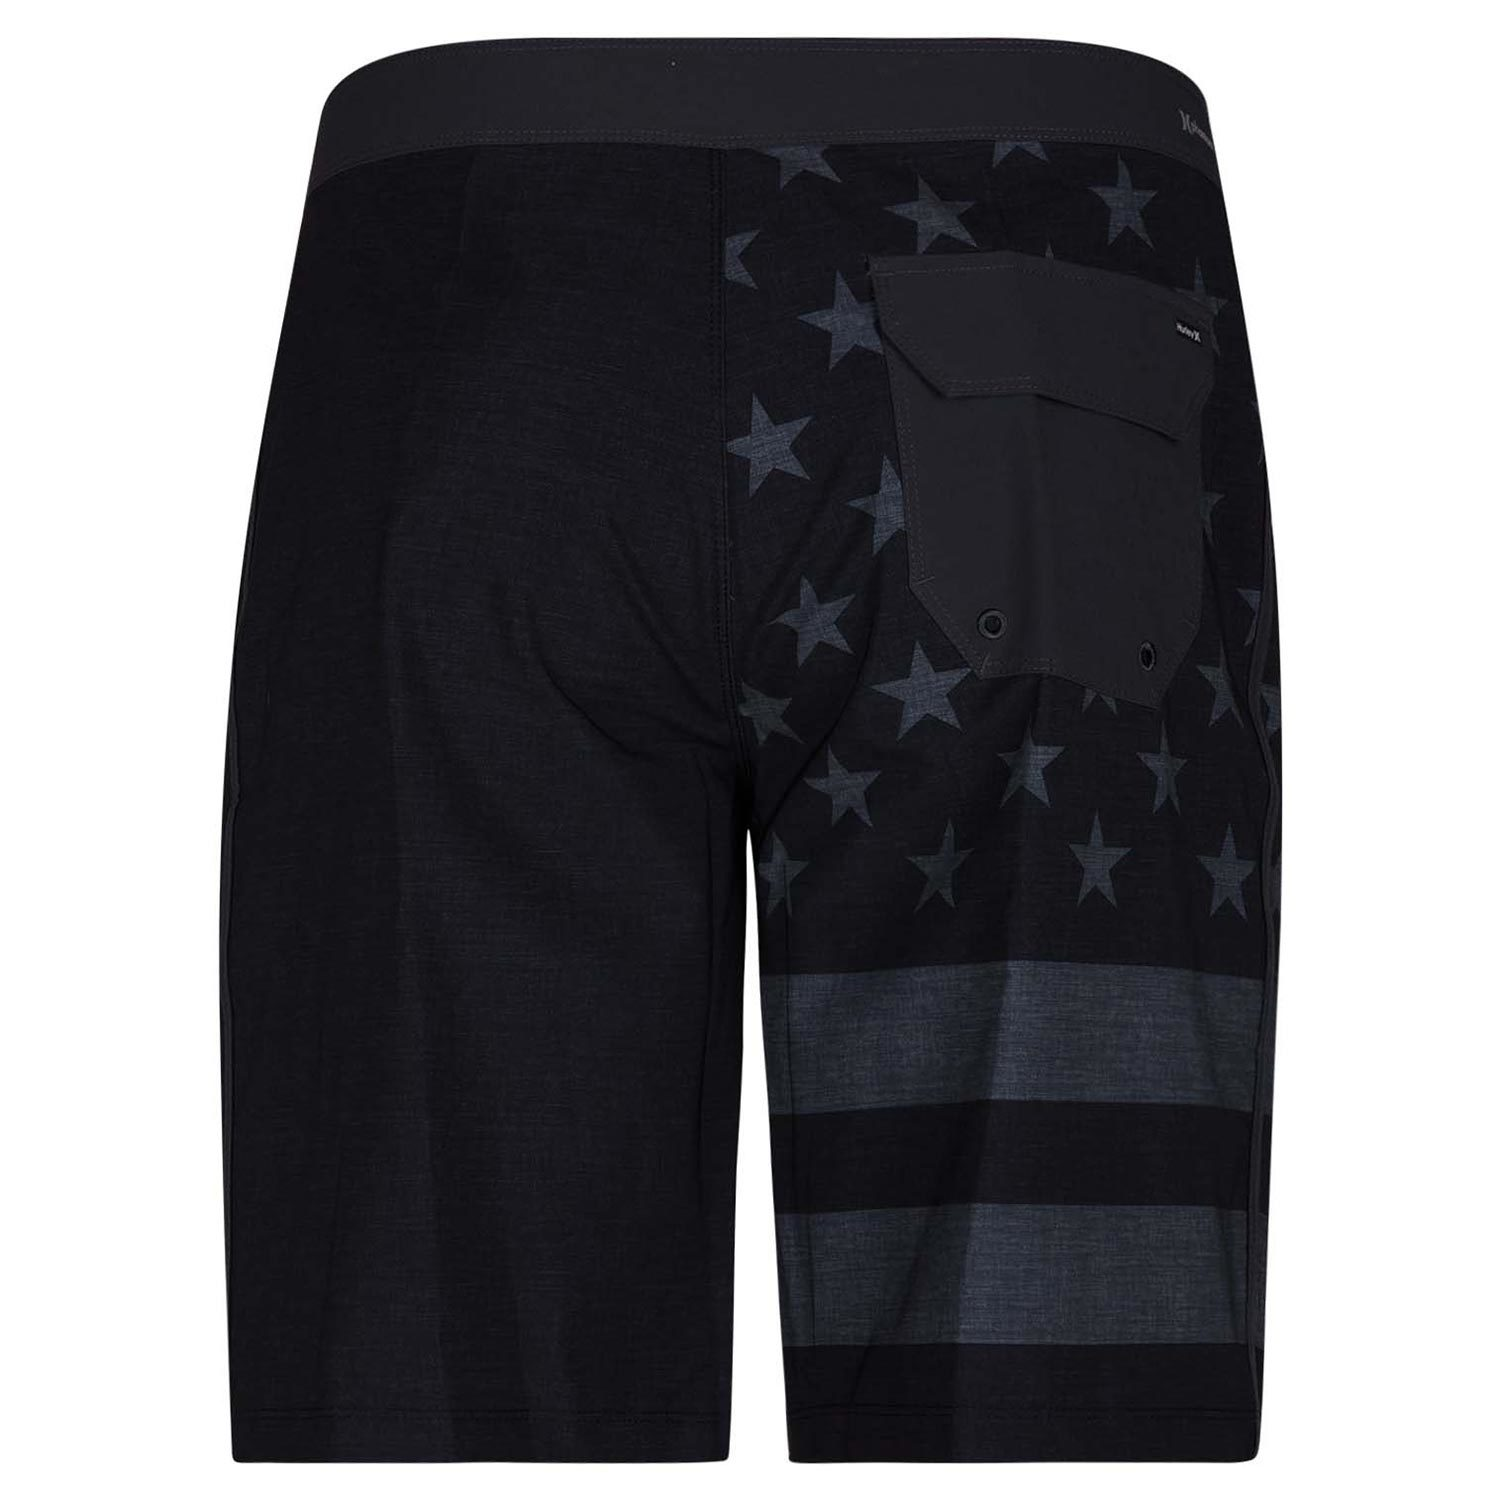 9c84687a4b729 Clearance Men's Phantom Cheers Board Short Enlarged view of picture, opens  dialog